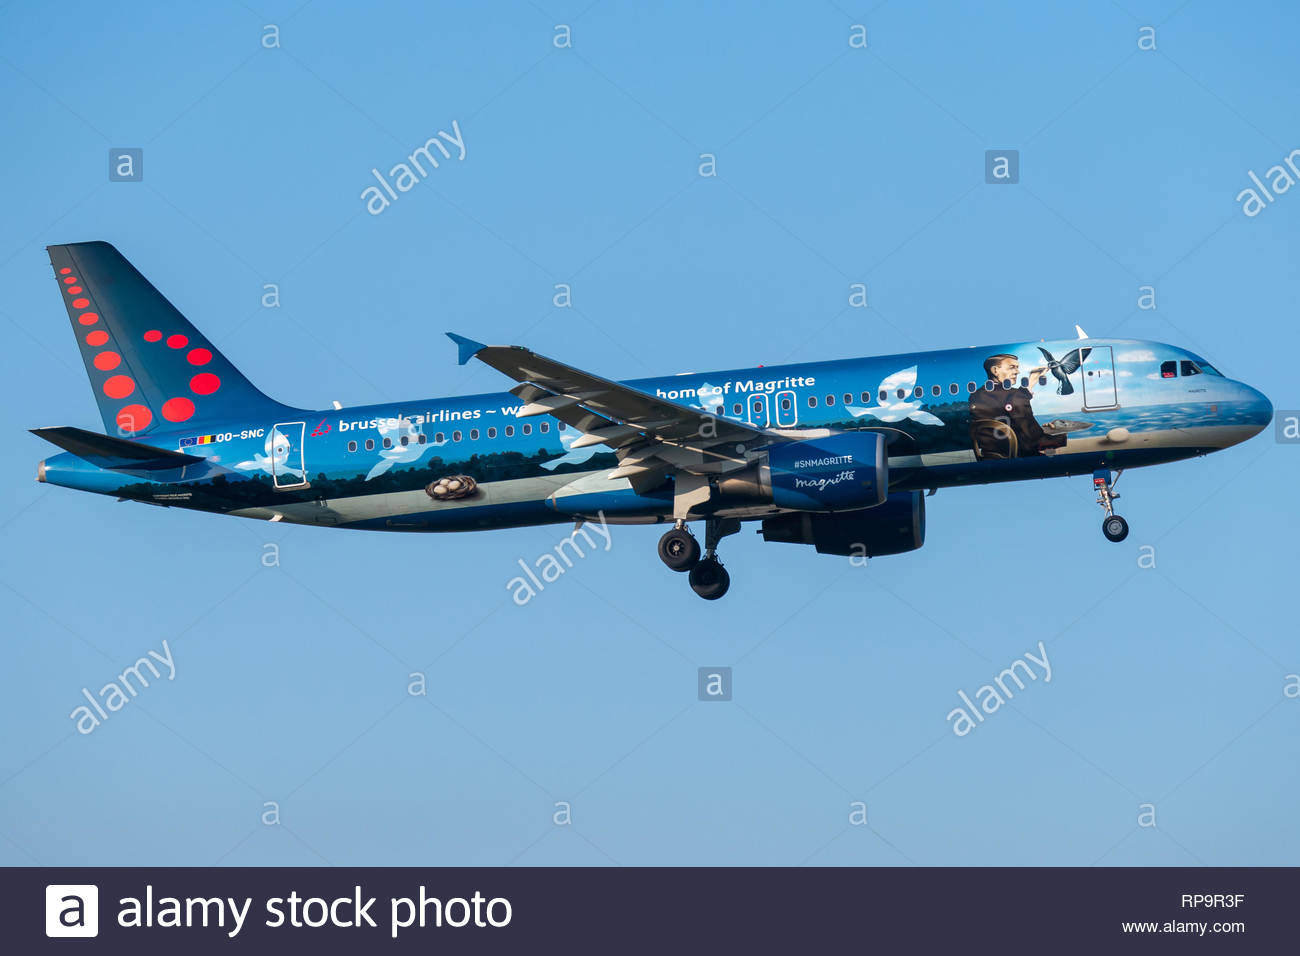 A Brussels Airlines Airbus A320 on short final for runway 07 at Brussels International Airport, wearing a special MAGRITTE livery - Stock Image